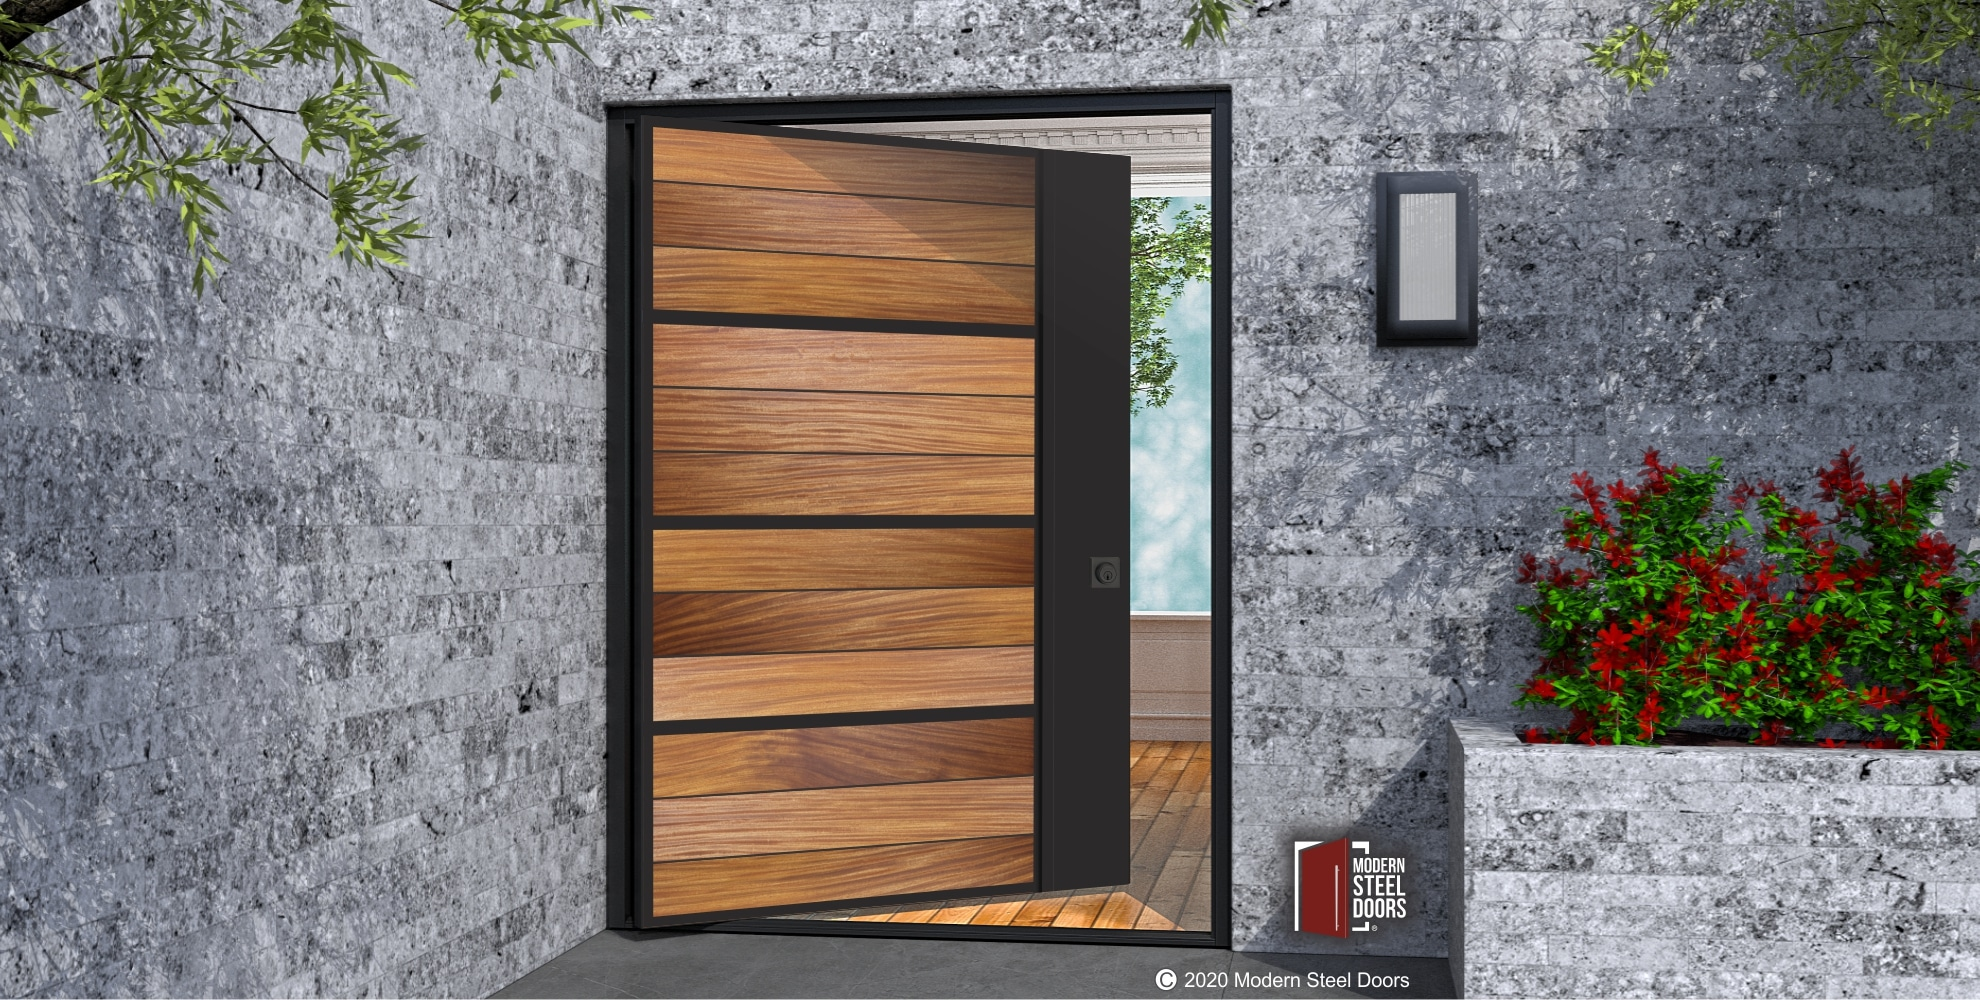 OUR BRYCE DESIGN HAS HORIZONTAL WOOD PLANKS, DOOR WITH METAL ACCENTS & BUILT-IN METAL HARDWARE